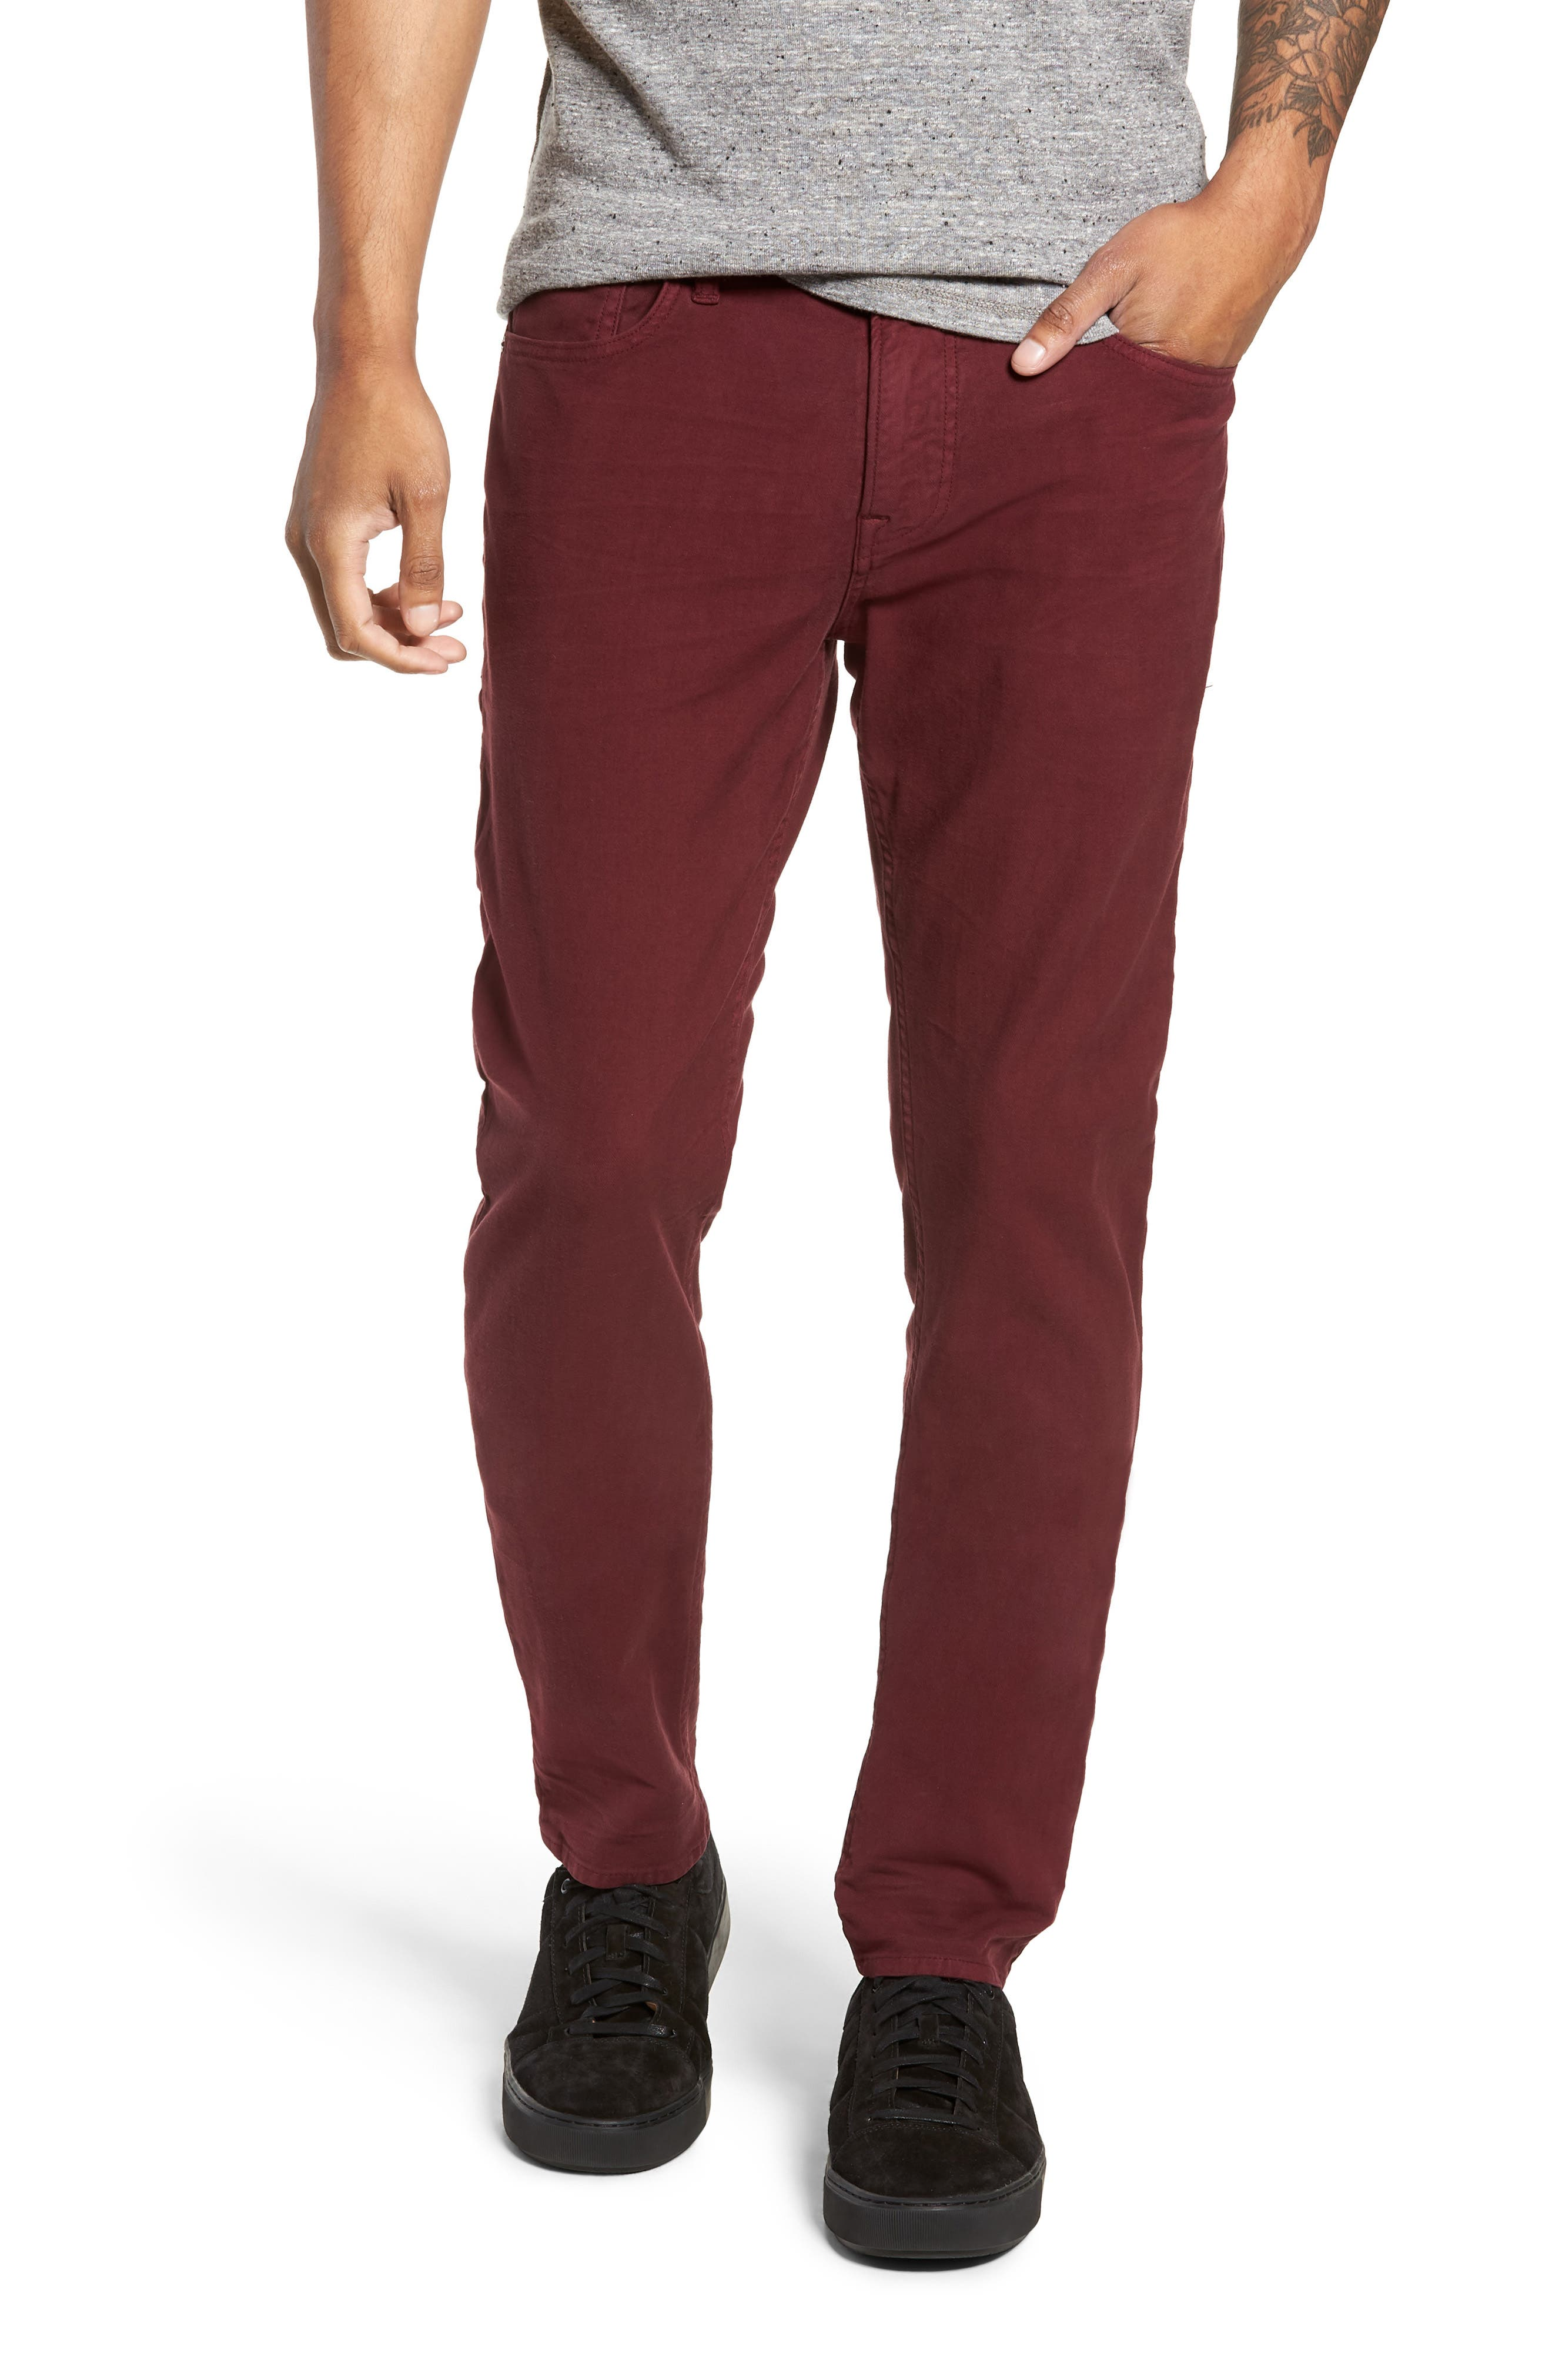 Axl Skinny Fit Twill Jeans,                             Main thumbnail 1, color,                             OXBLOOD